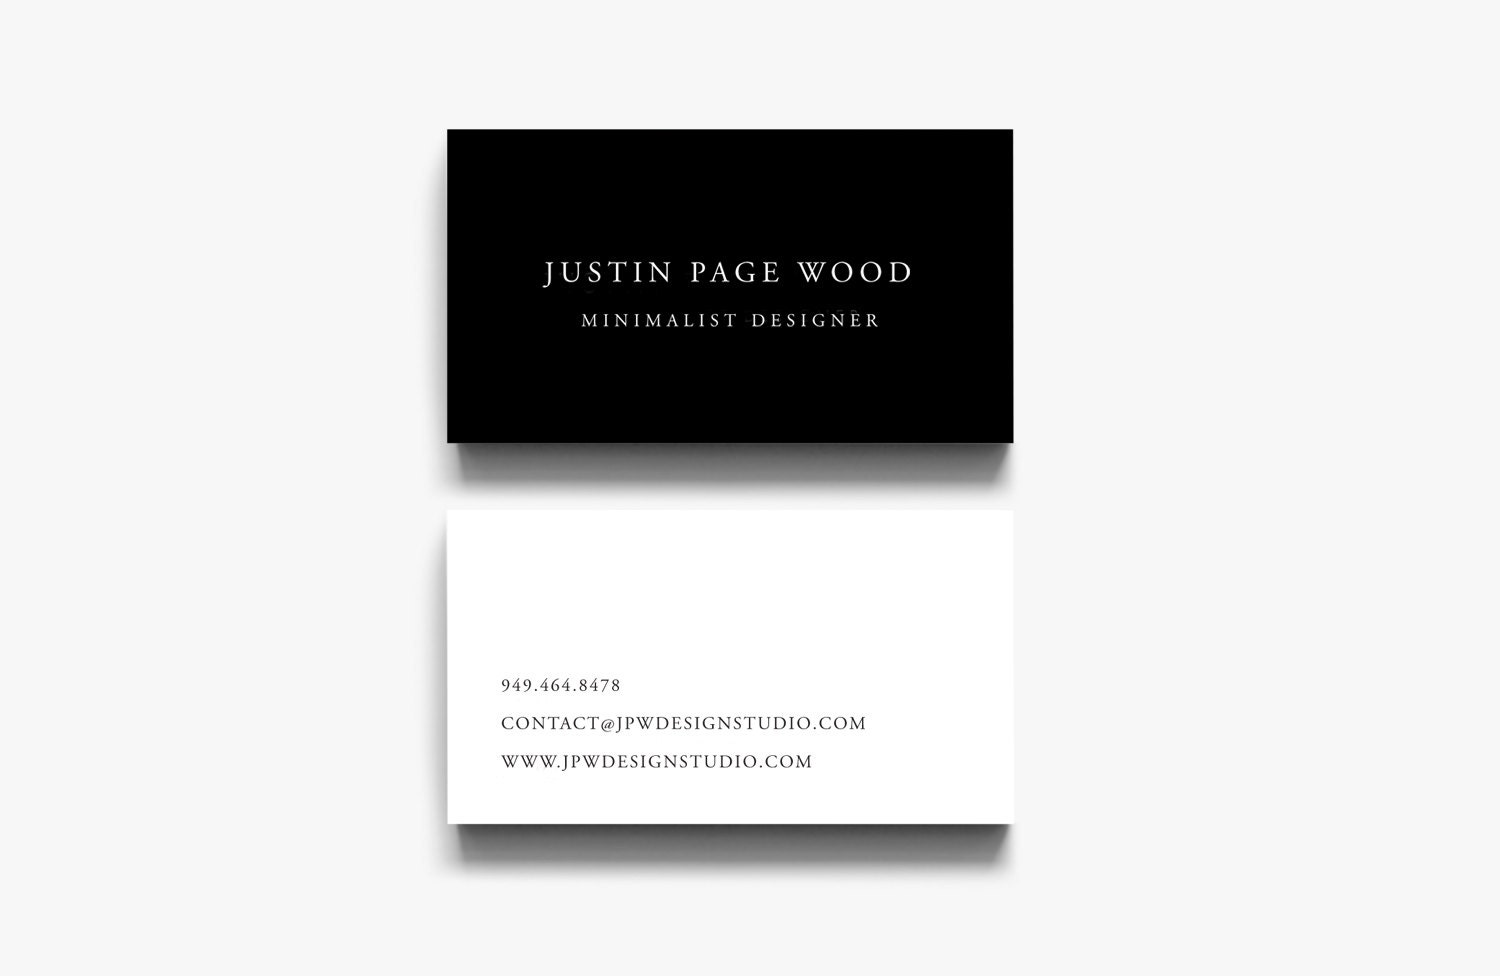 Calling Cards Business Card Design Modern Business Card Etsy